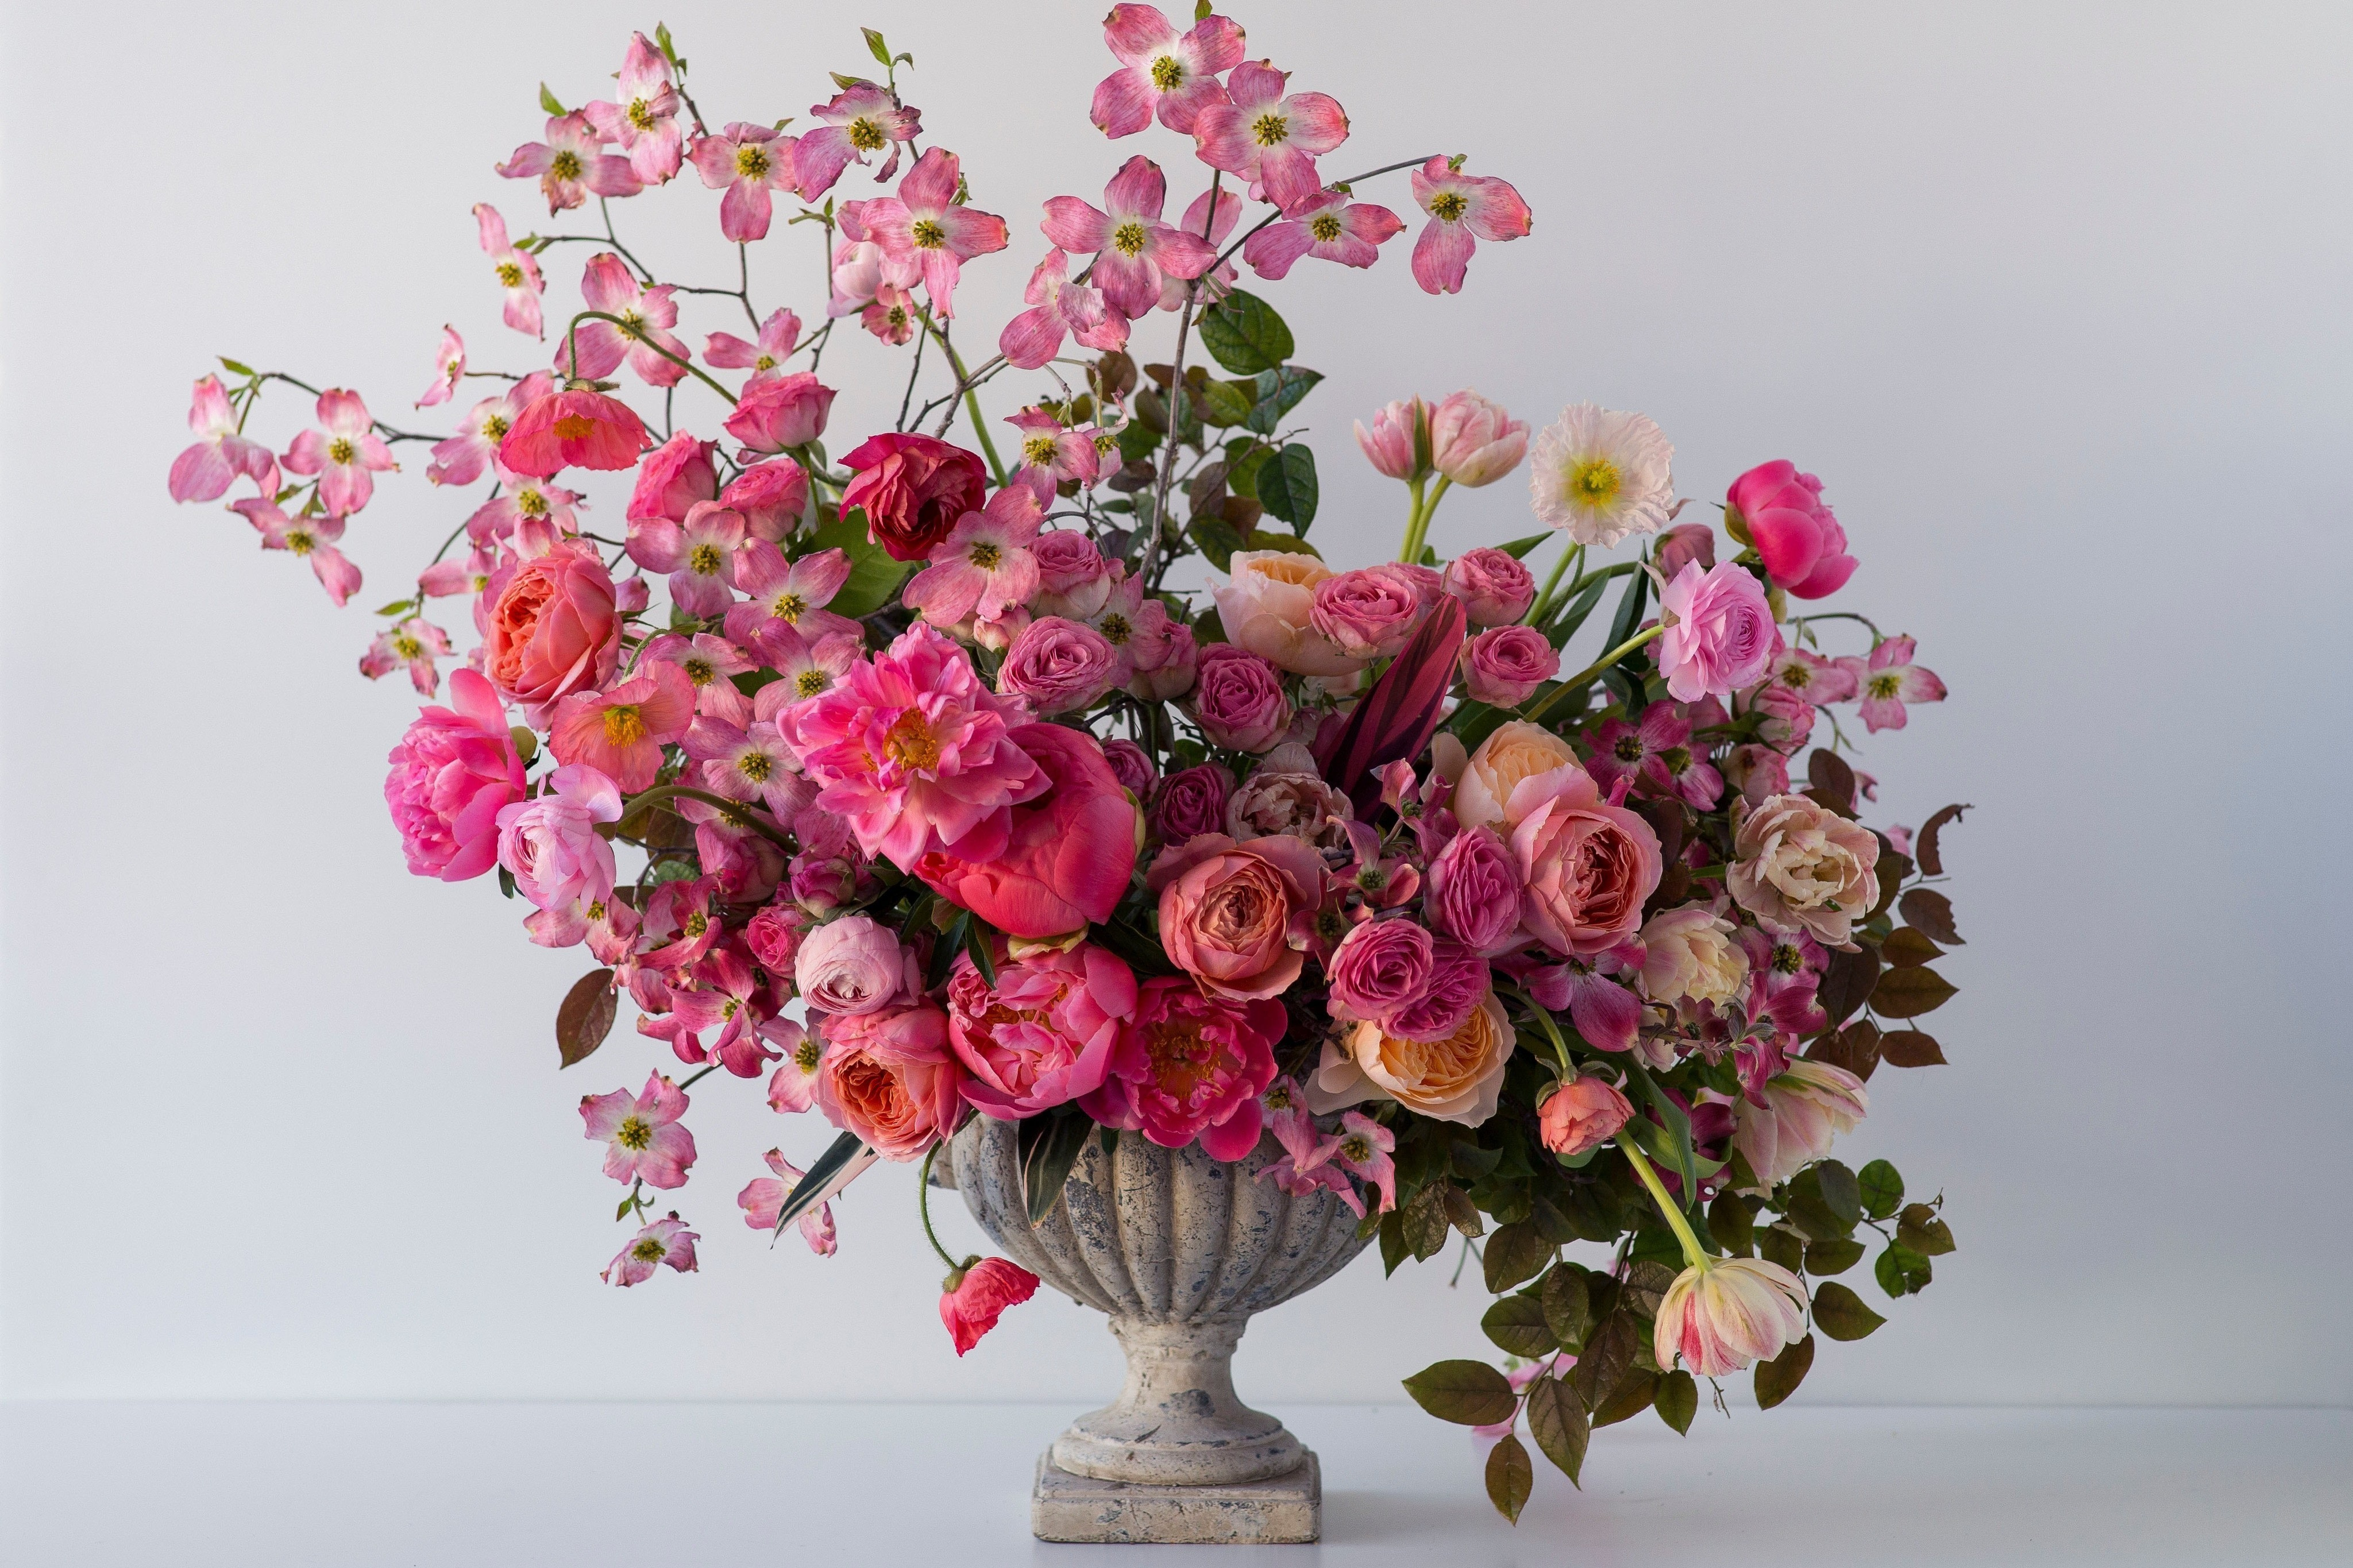 Pink Bouquet Extract From Color Me Floral By Kiana Underwood How